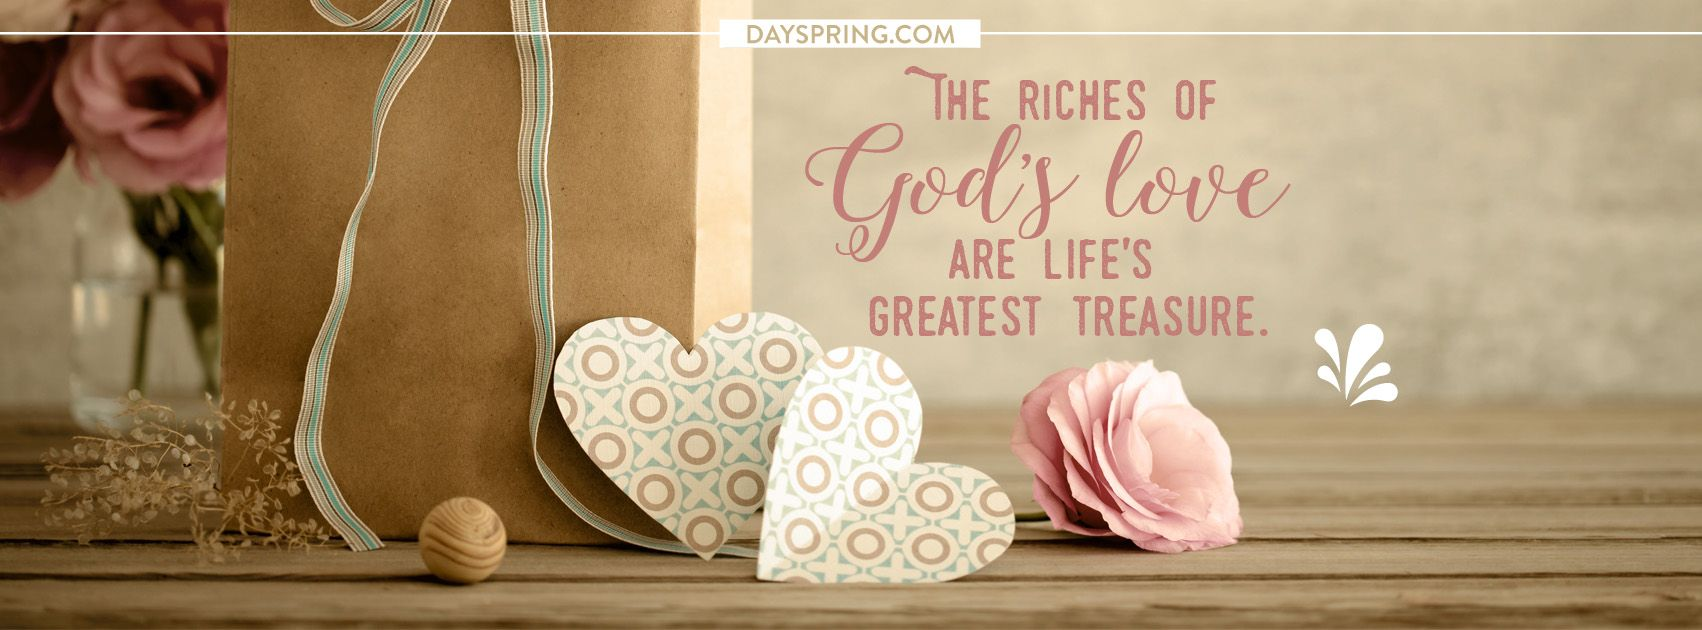 Greatest Treasure  Facebook cover photos inspirational, Christian